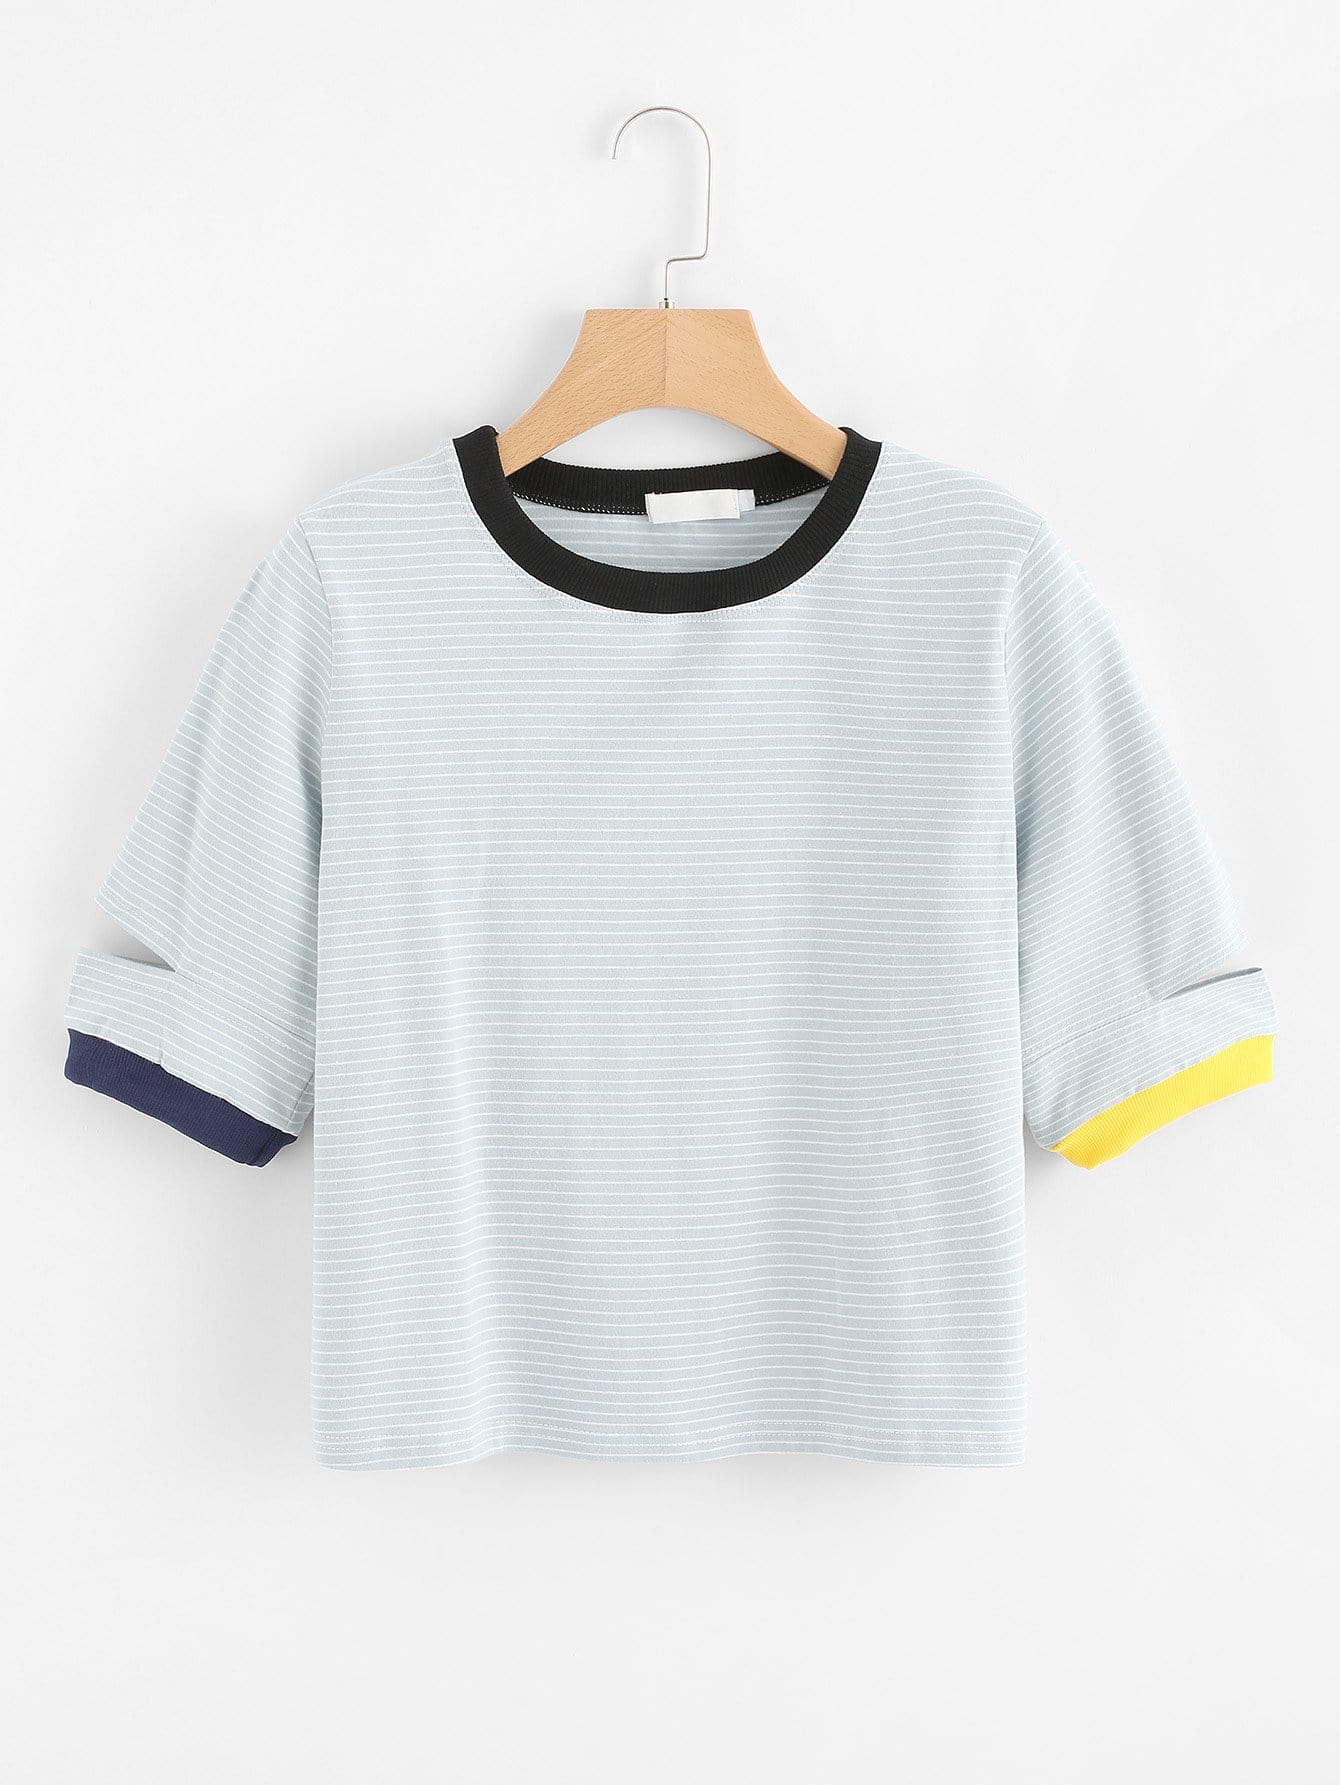 Contrast Trim Ripped Striped Tee